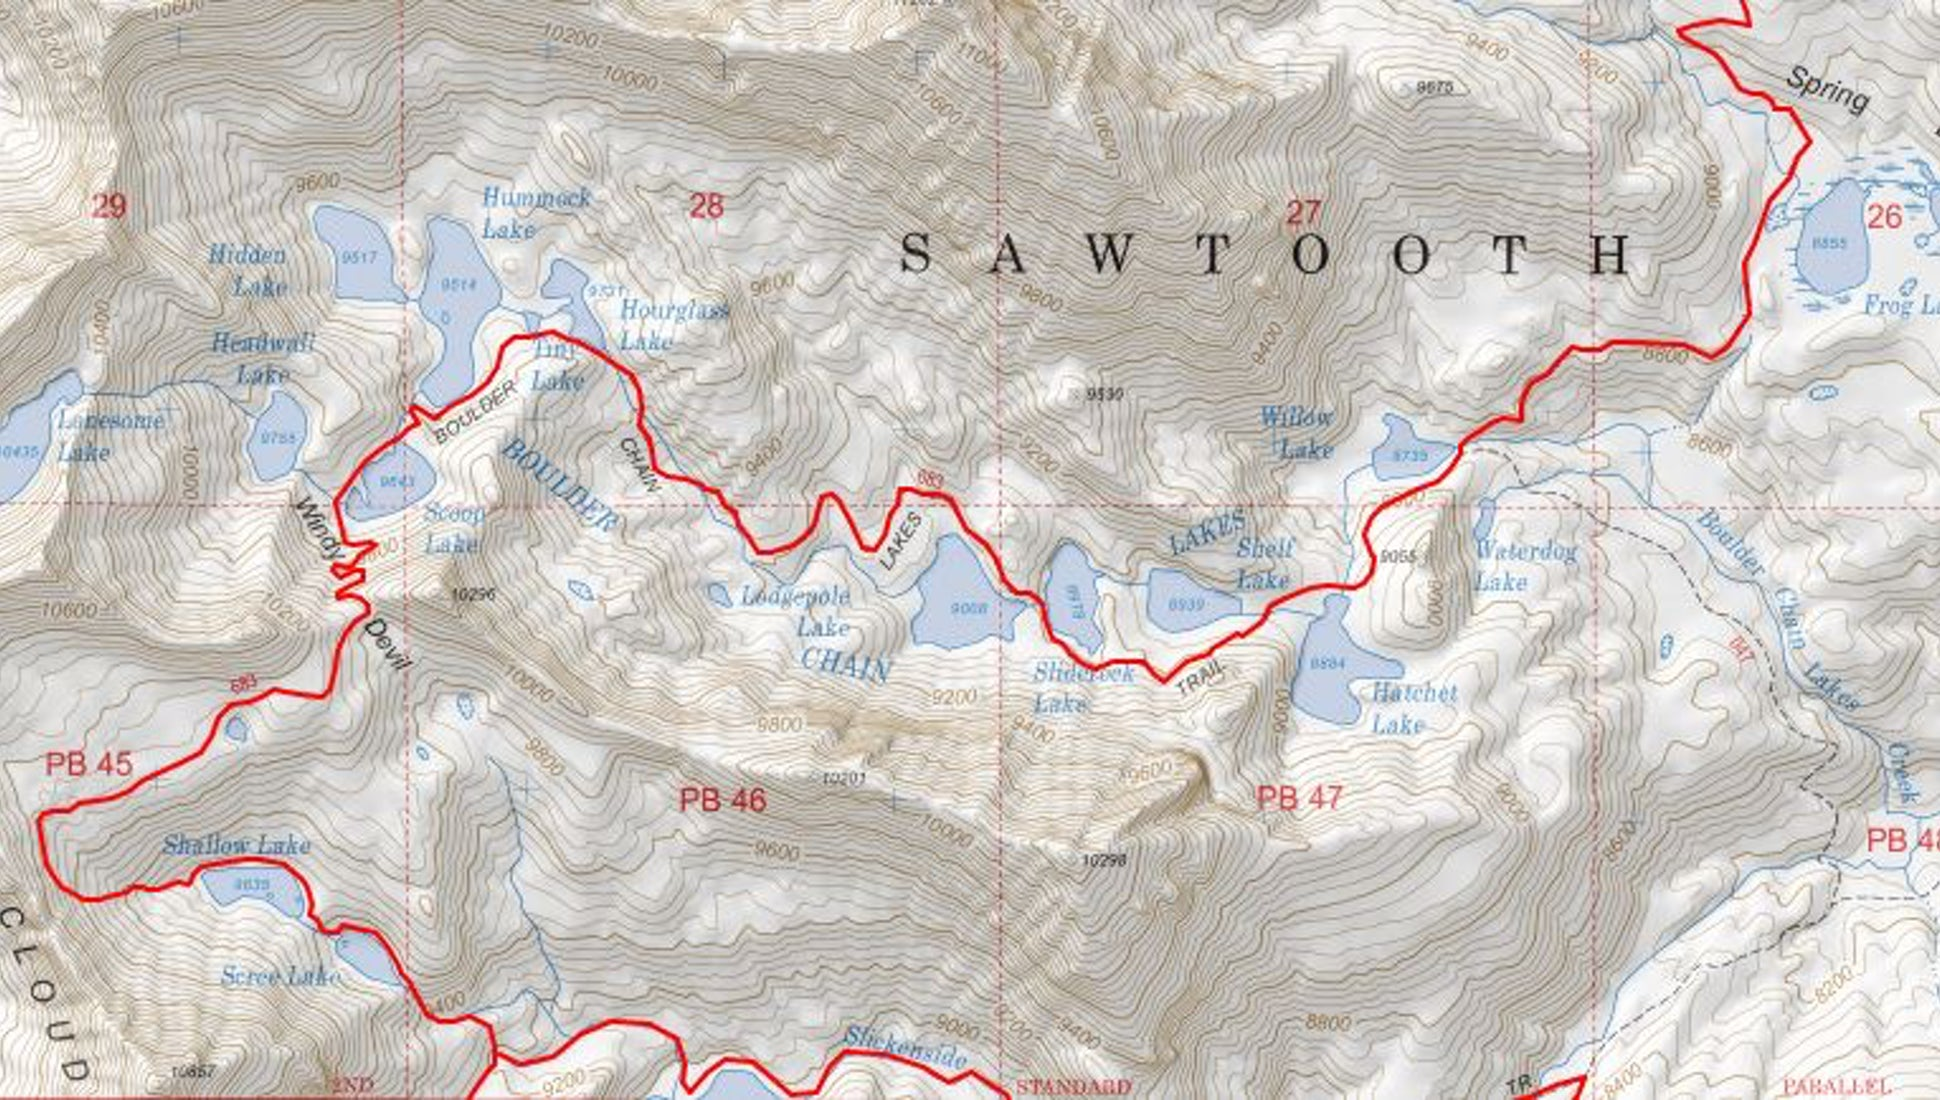 Every Backpacker Should Print Their Maps From Caltopo. Here's Why. on political map of california, geological map of california, topo map of california, printable map of california, rand mcnally map of california,